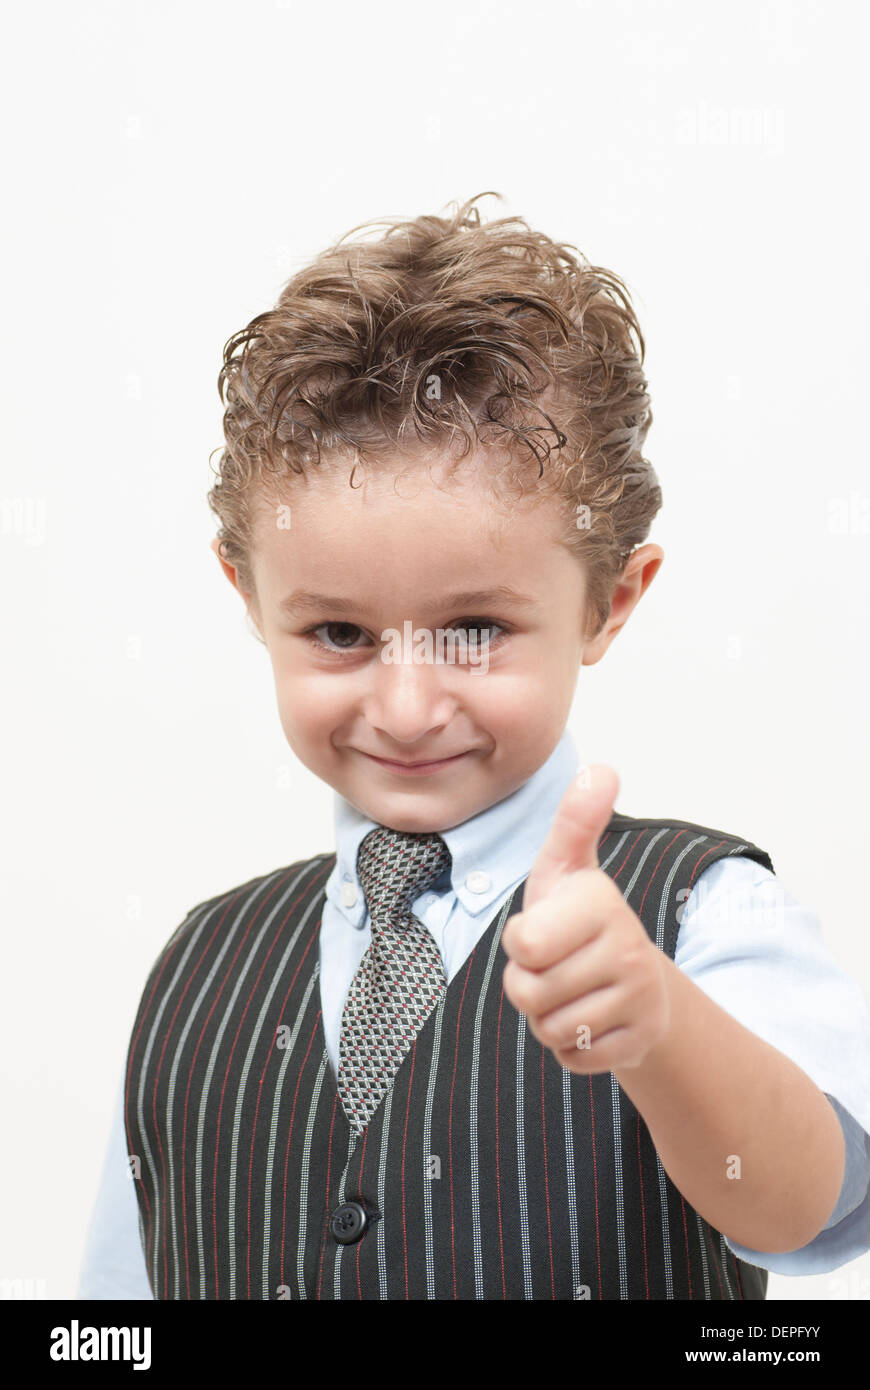 Boy in waistcoat and tie thumbs up Stock Photo